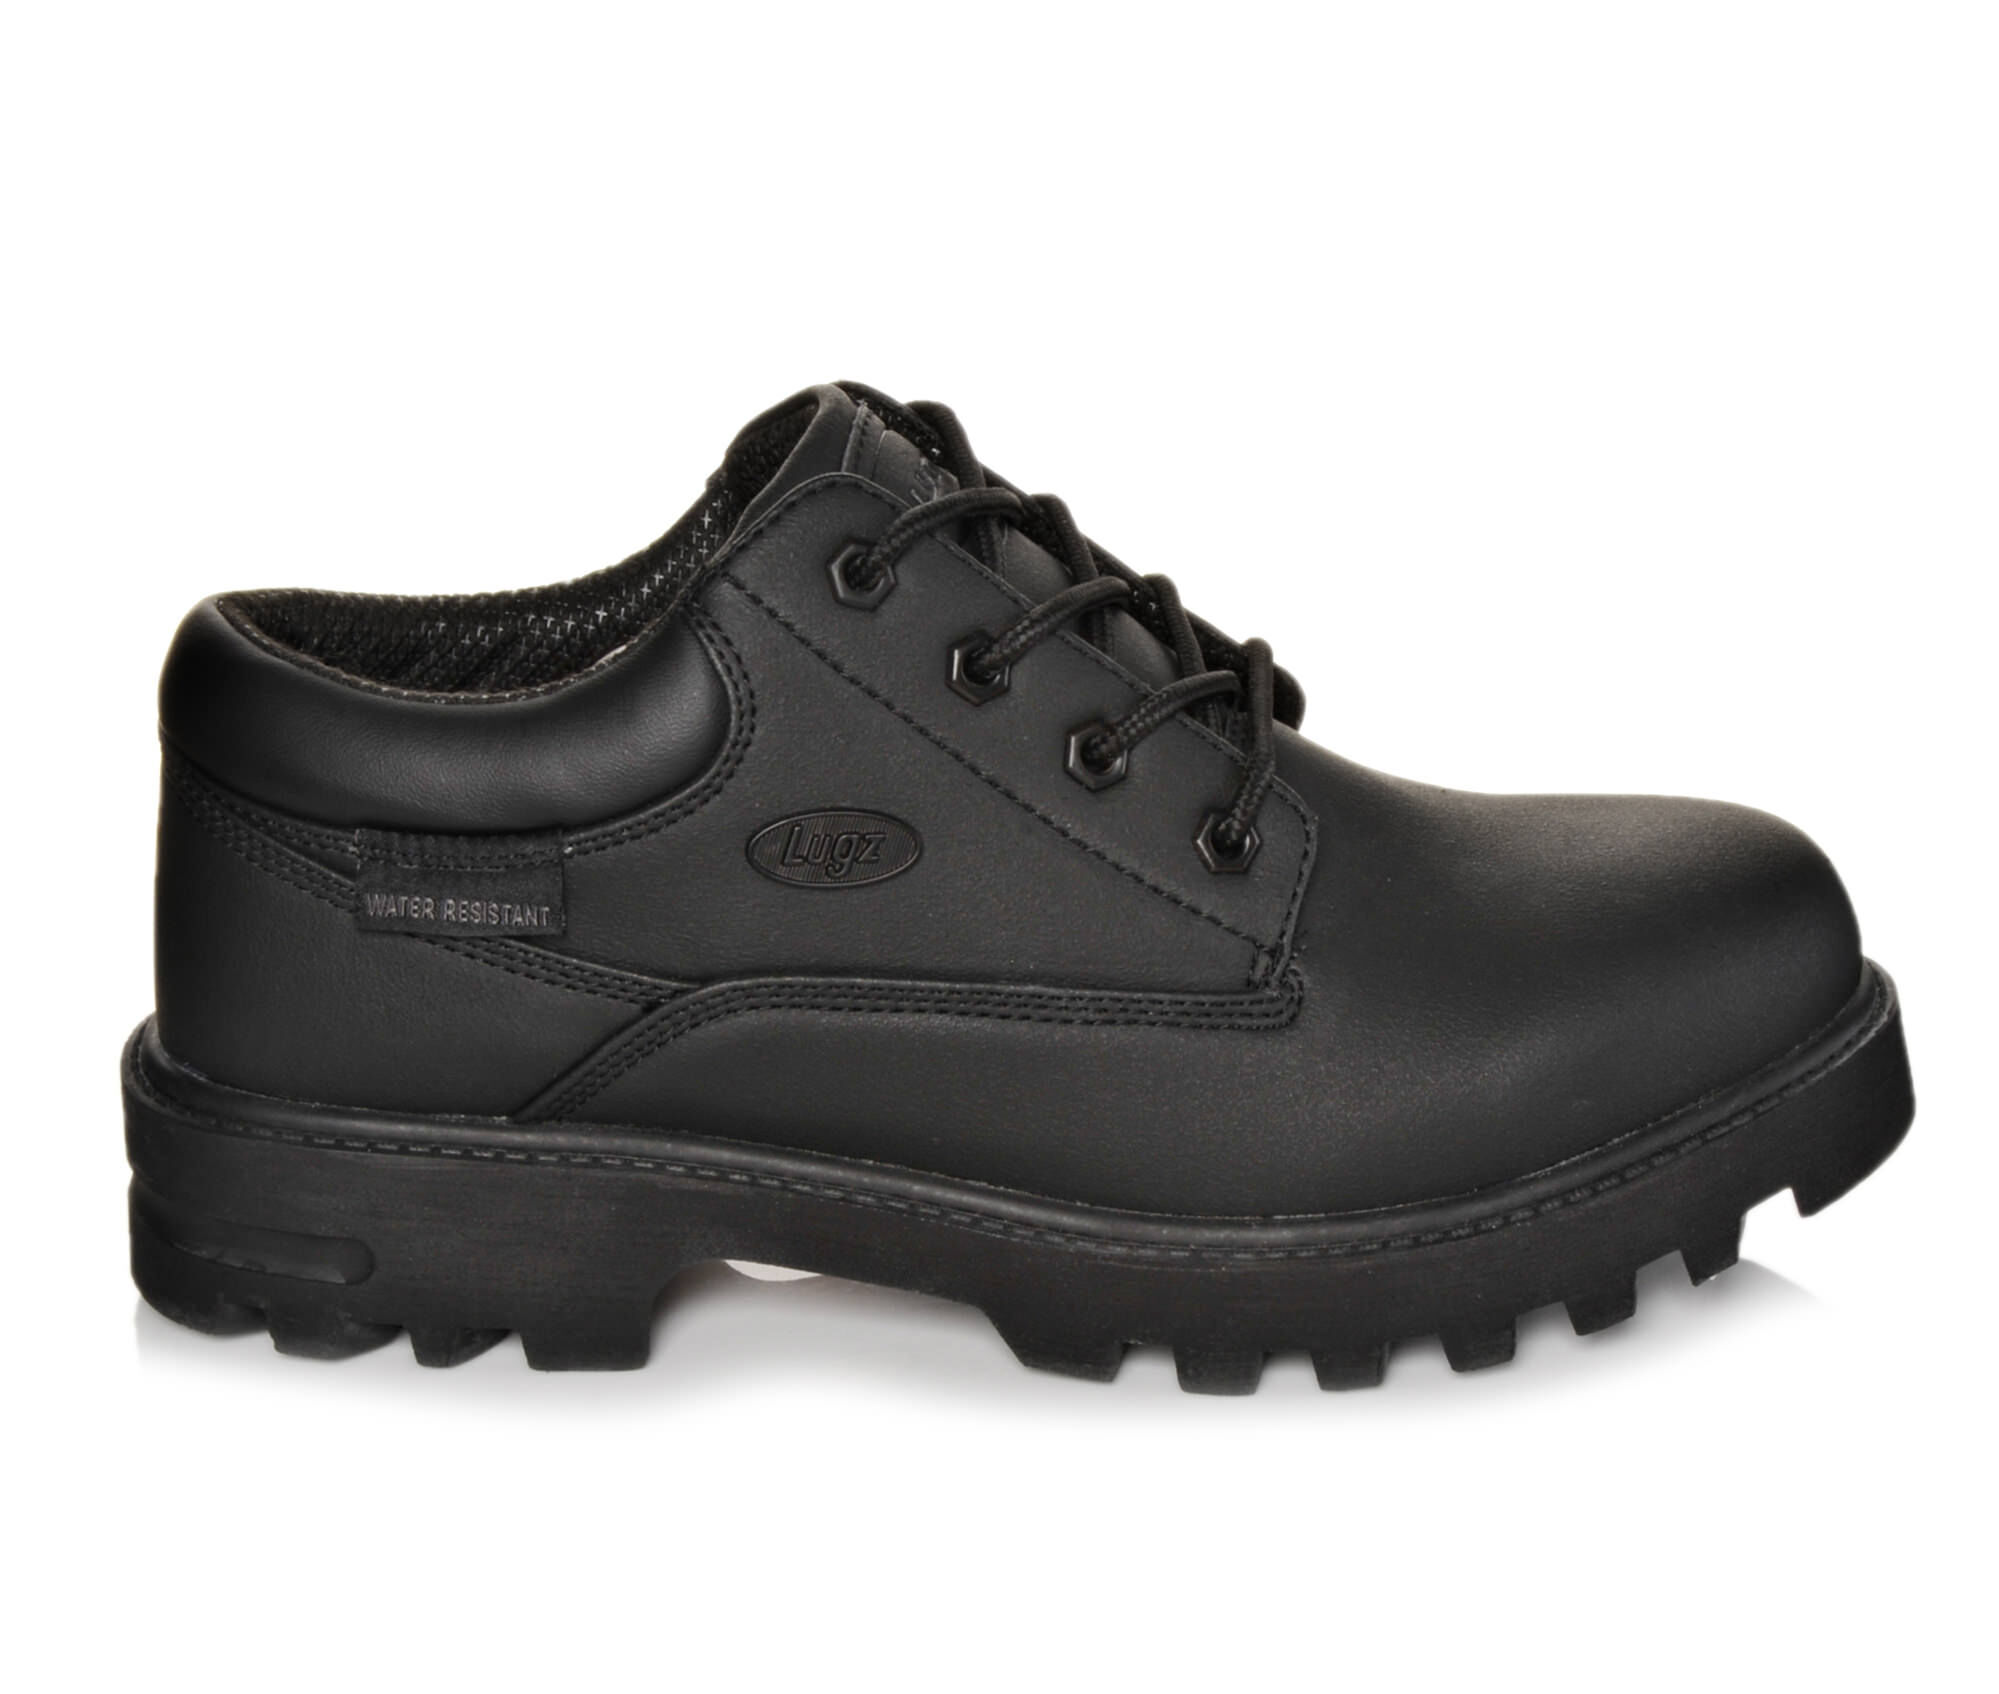 Men's Lugz Empire Lo Slip Resistant Slip-Resistant Shoes Black Scuff